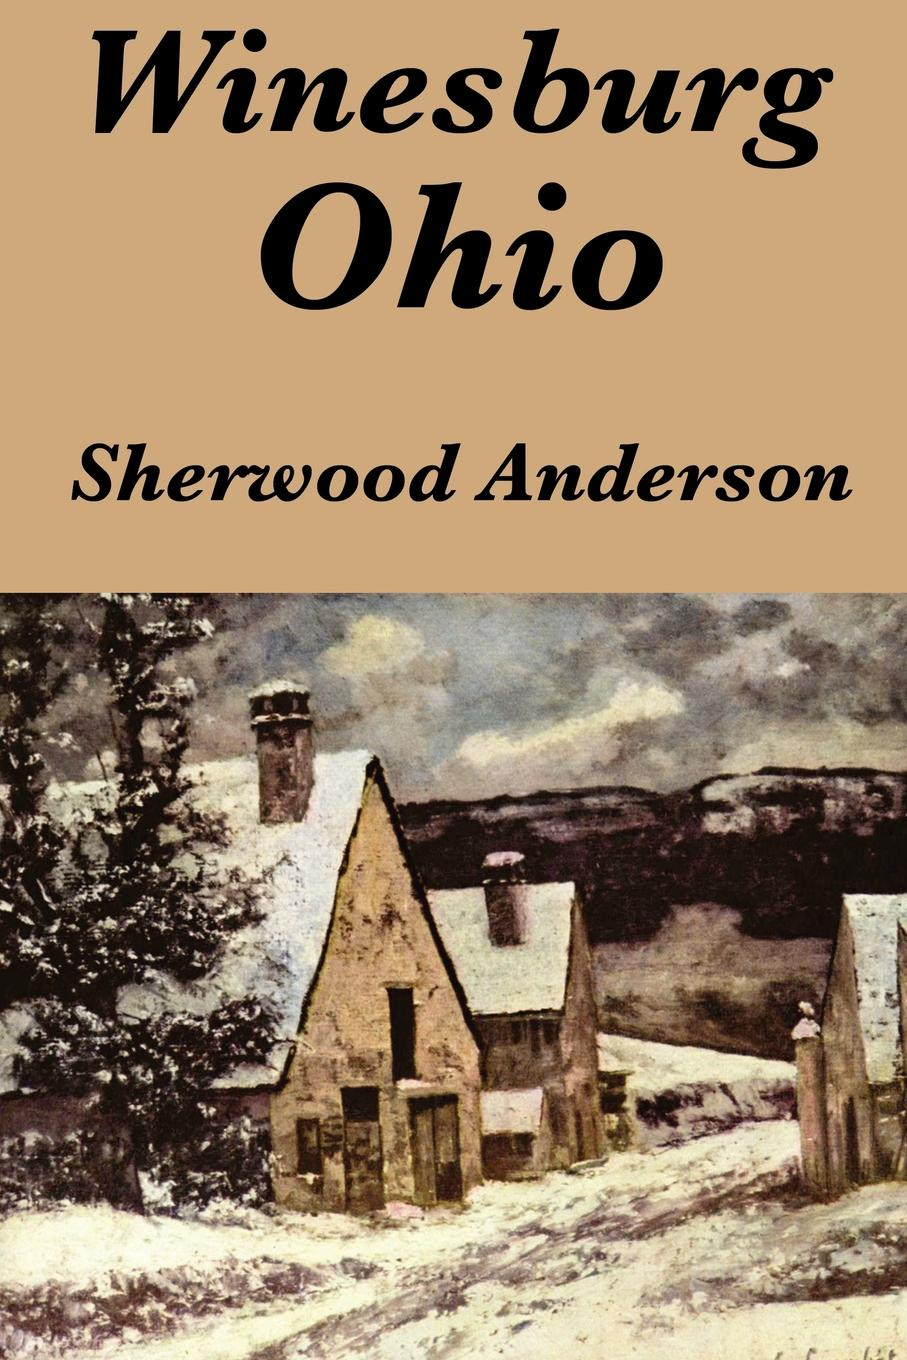 Sherwood Anderson Winesburg Ohio by Sherwood Anderson